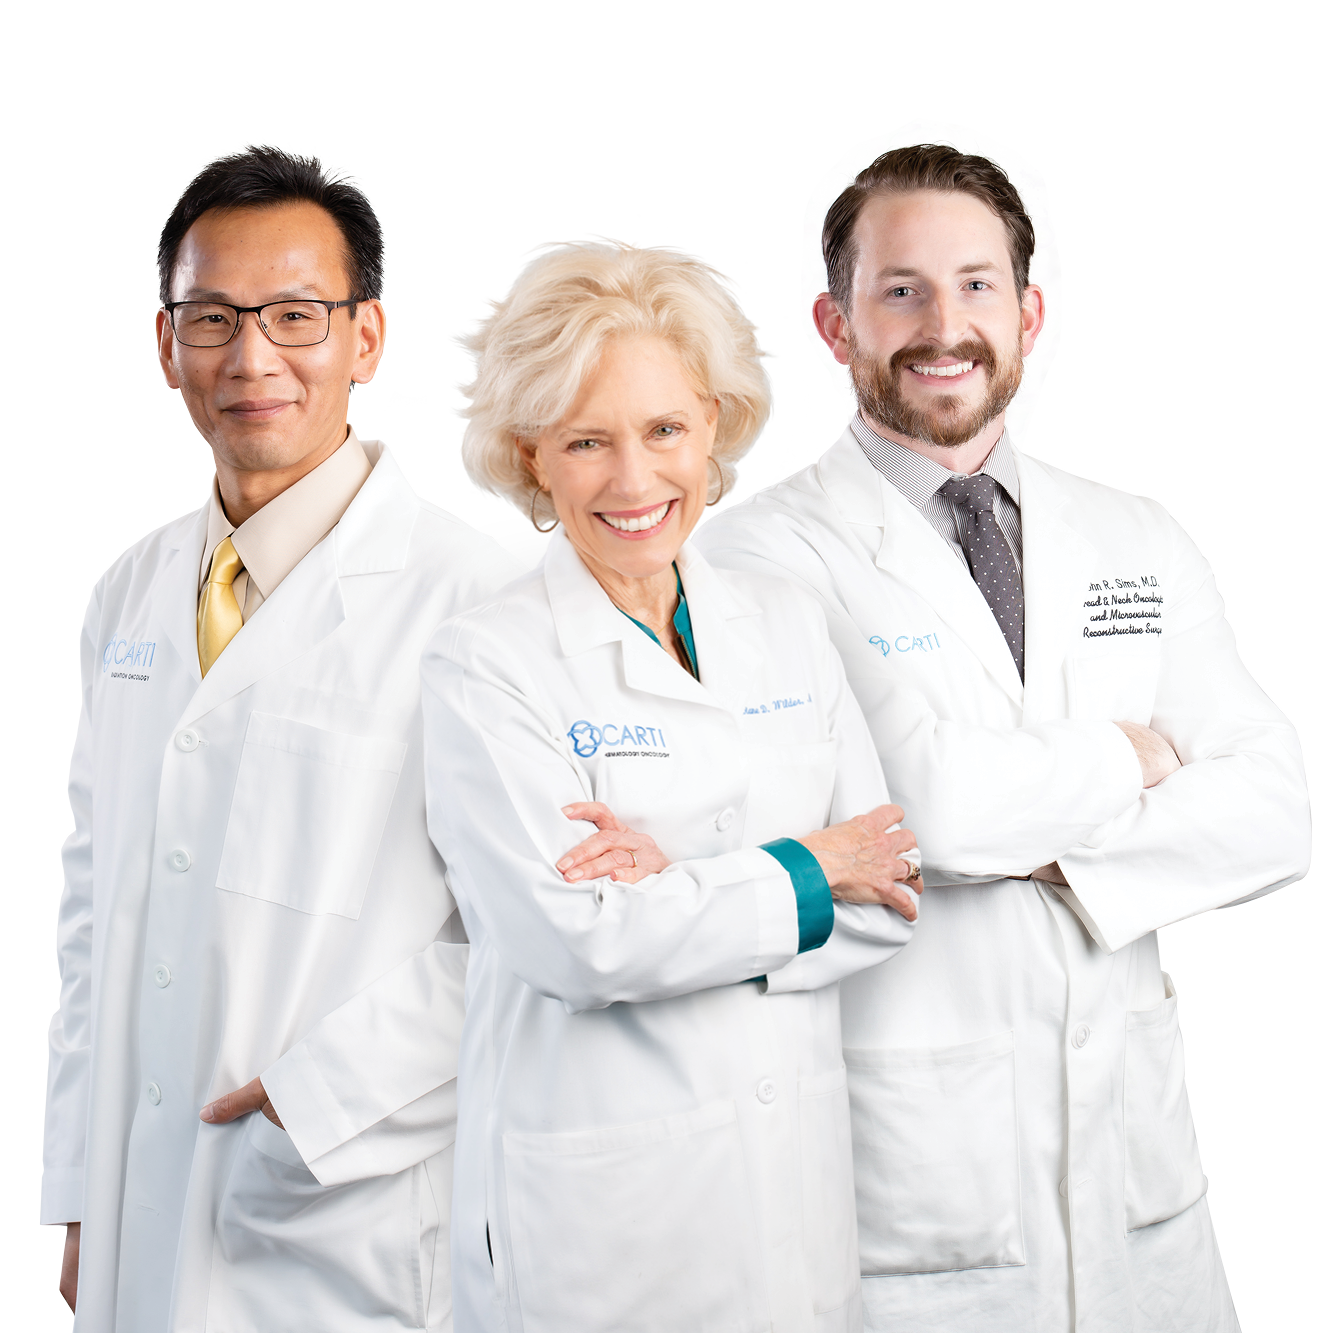 Beast Cancer Doctors Arkansas